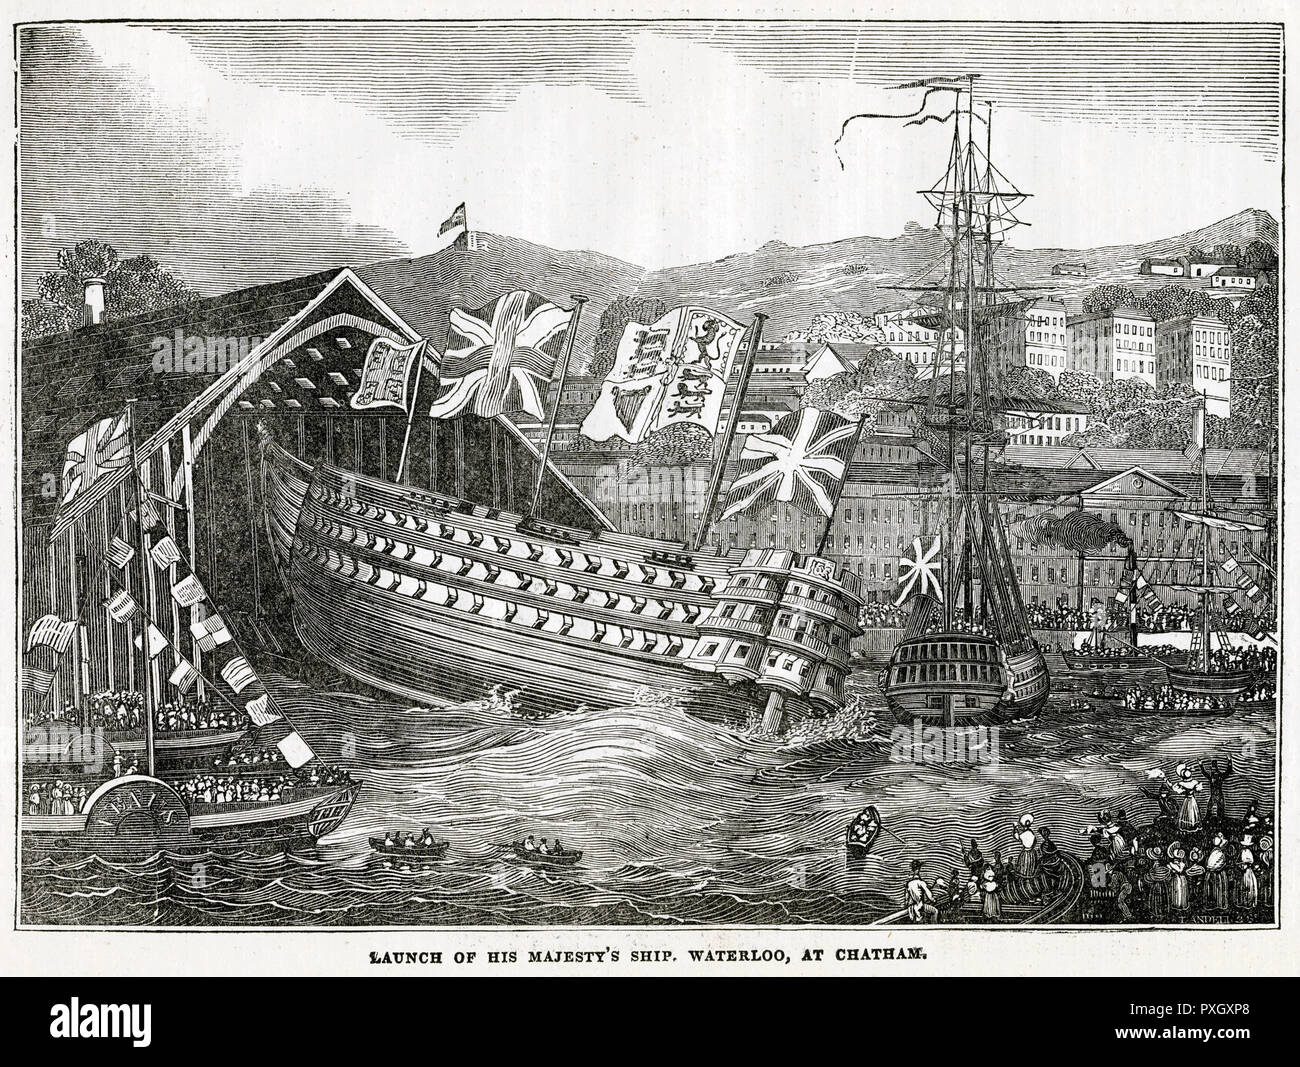 Launch of His Majesty's ship, HMS Waterloo at Chatham in 1833. HMS Waterloo  was a 120-gun first-rate ship of the line of the Royal Navy. Date: 10 June  1833